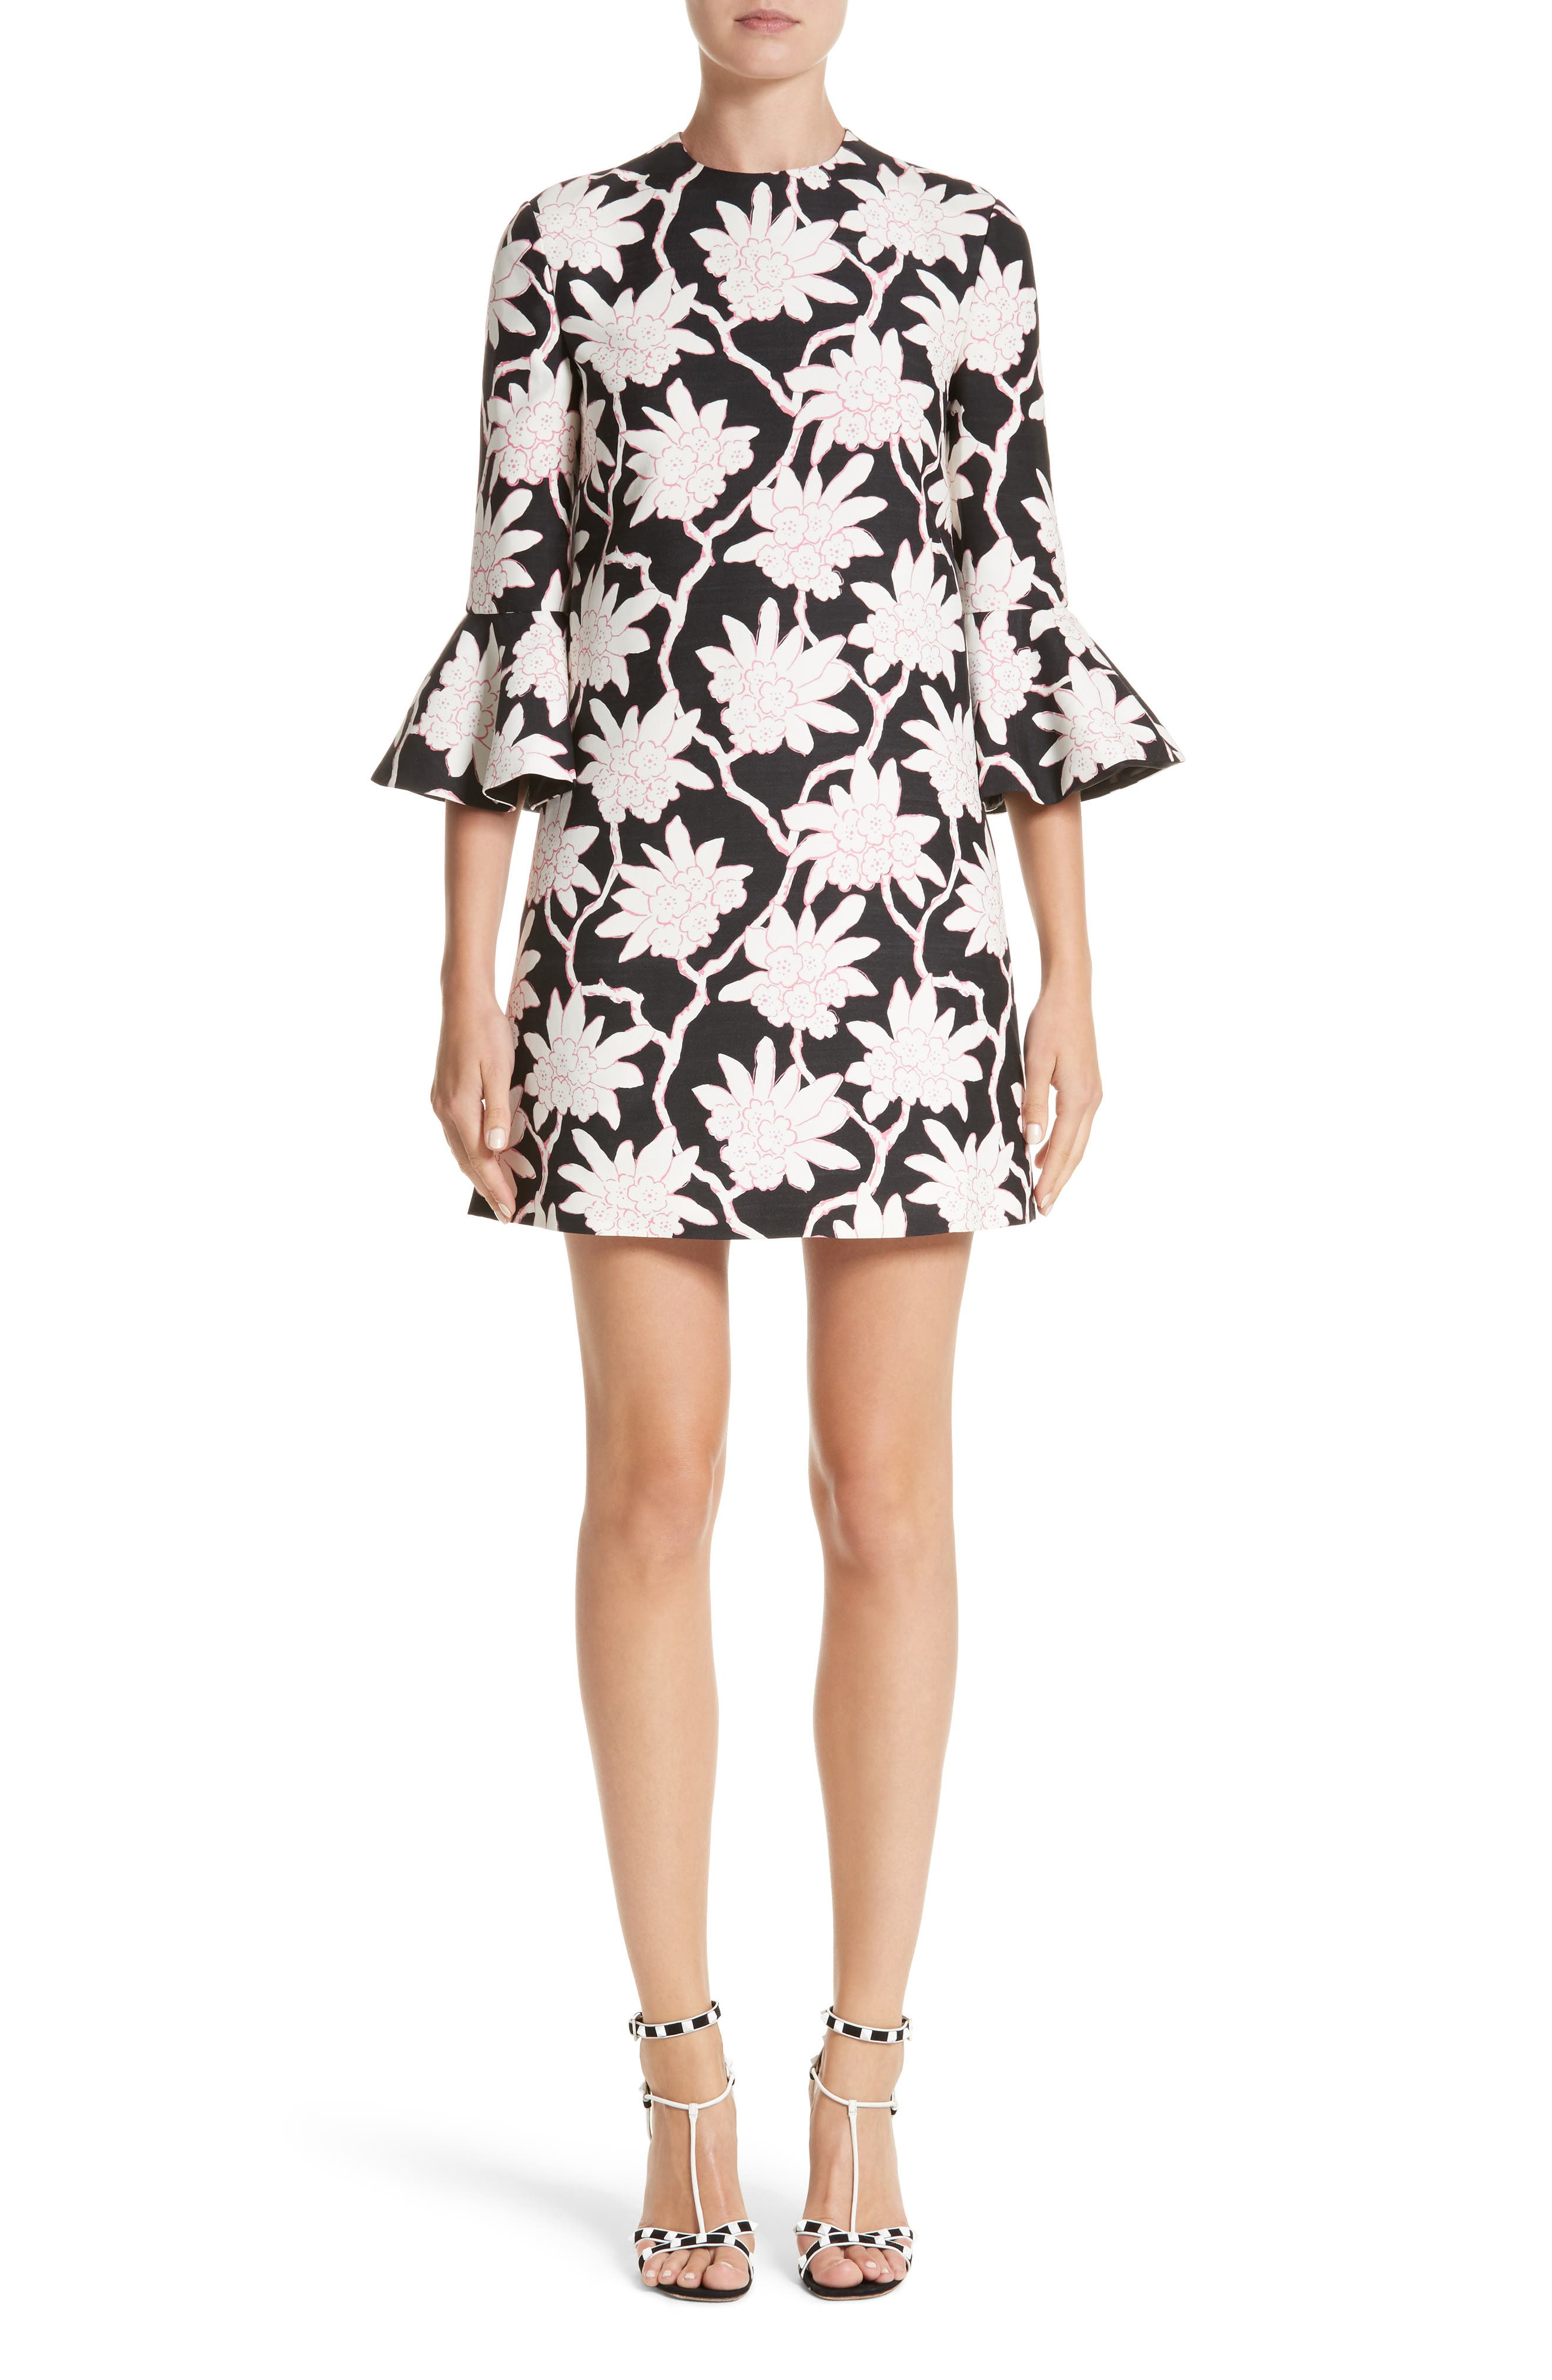 Rhododendron Print Wool & Silk Dress,                         Main,                         color, 001